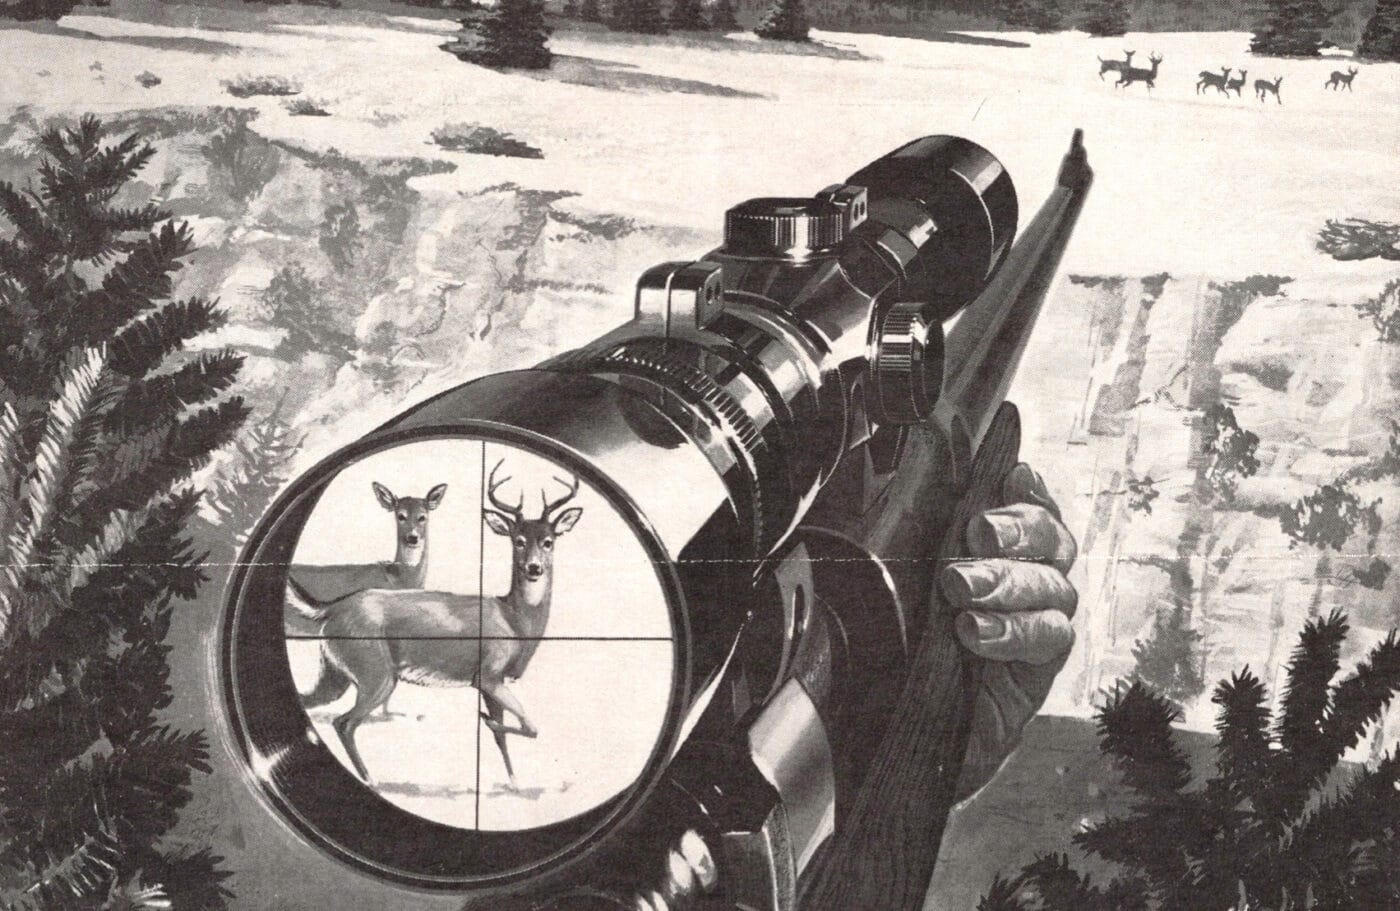 Lyman All-American scope with Perma-Center reticle